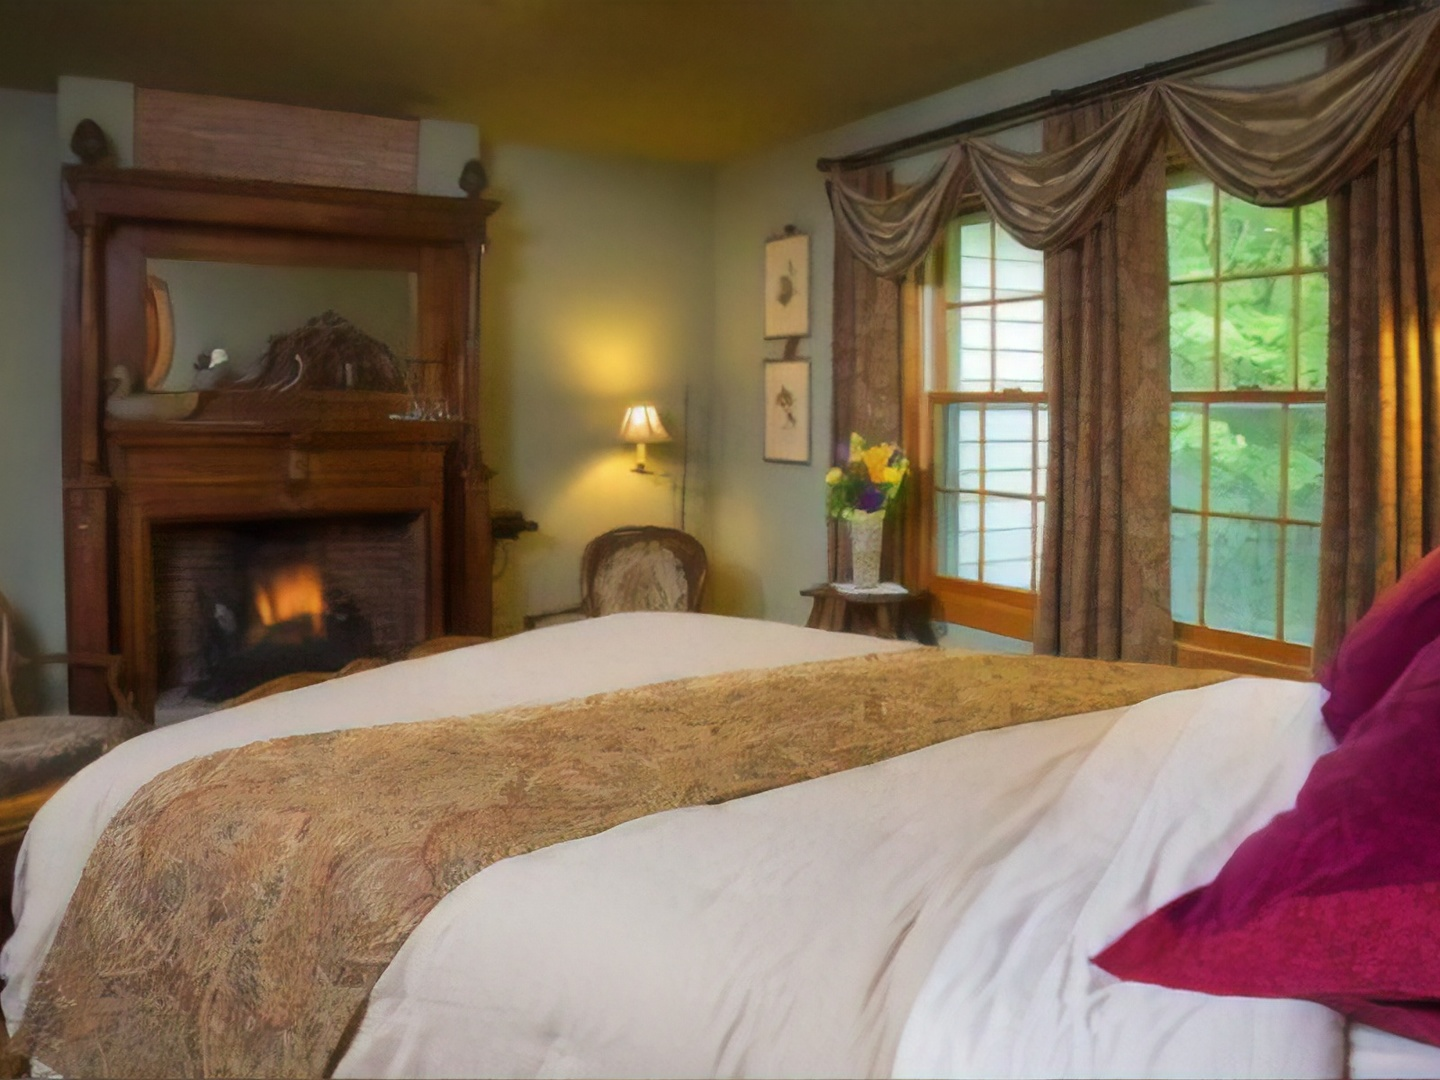 A bedroom with a large bed in a hotel room at Hidden Serenity Bed & Breakfast.